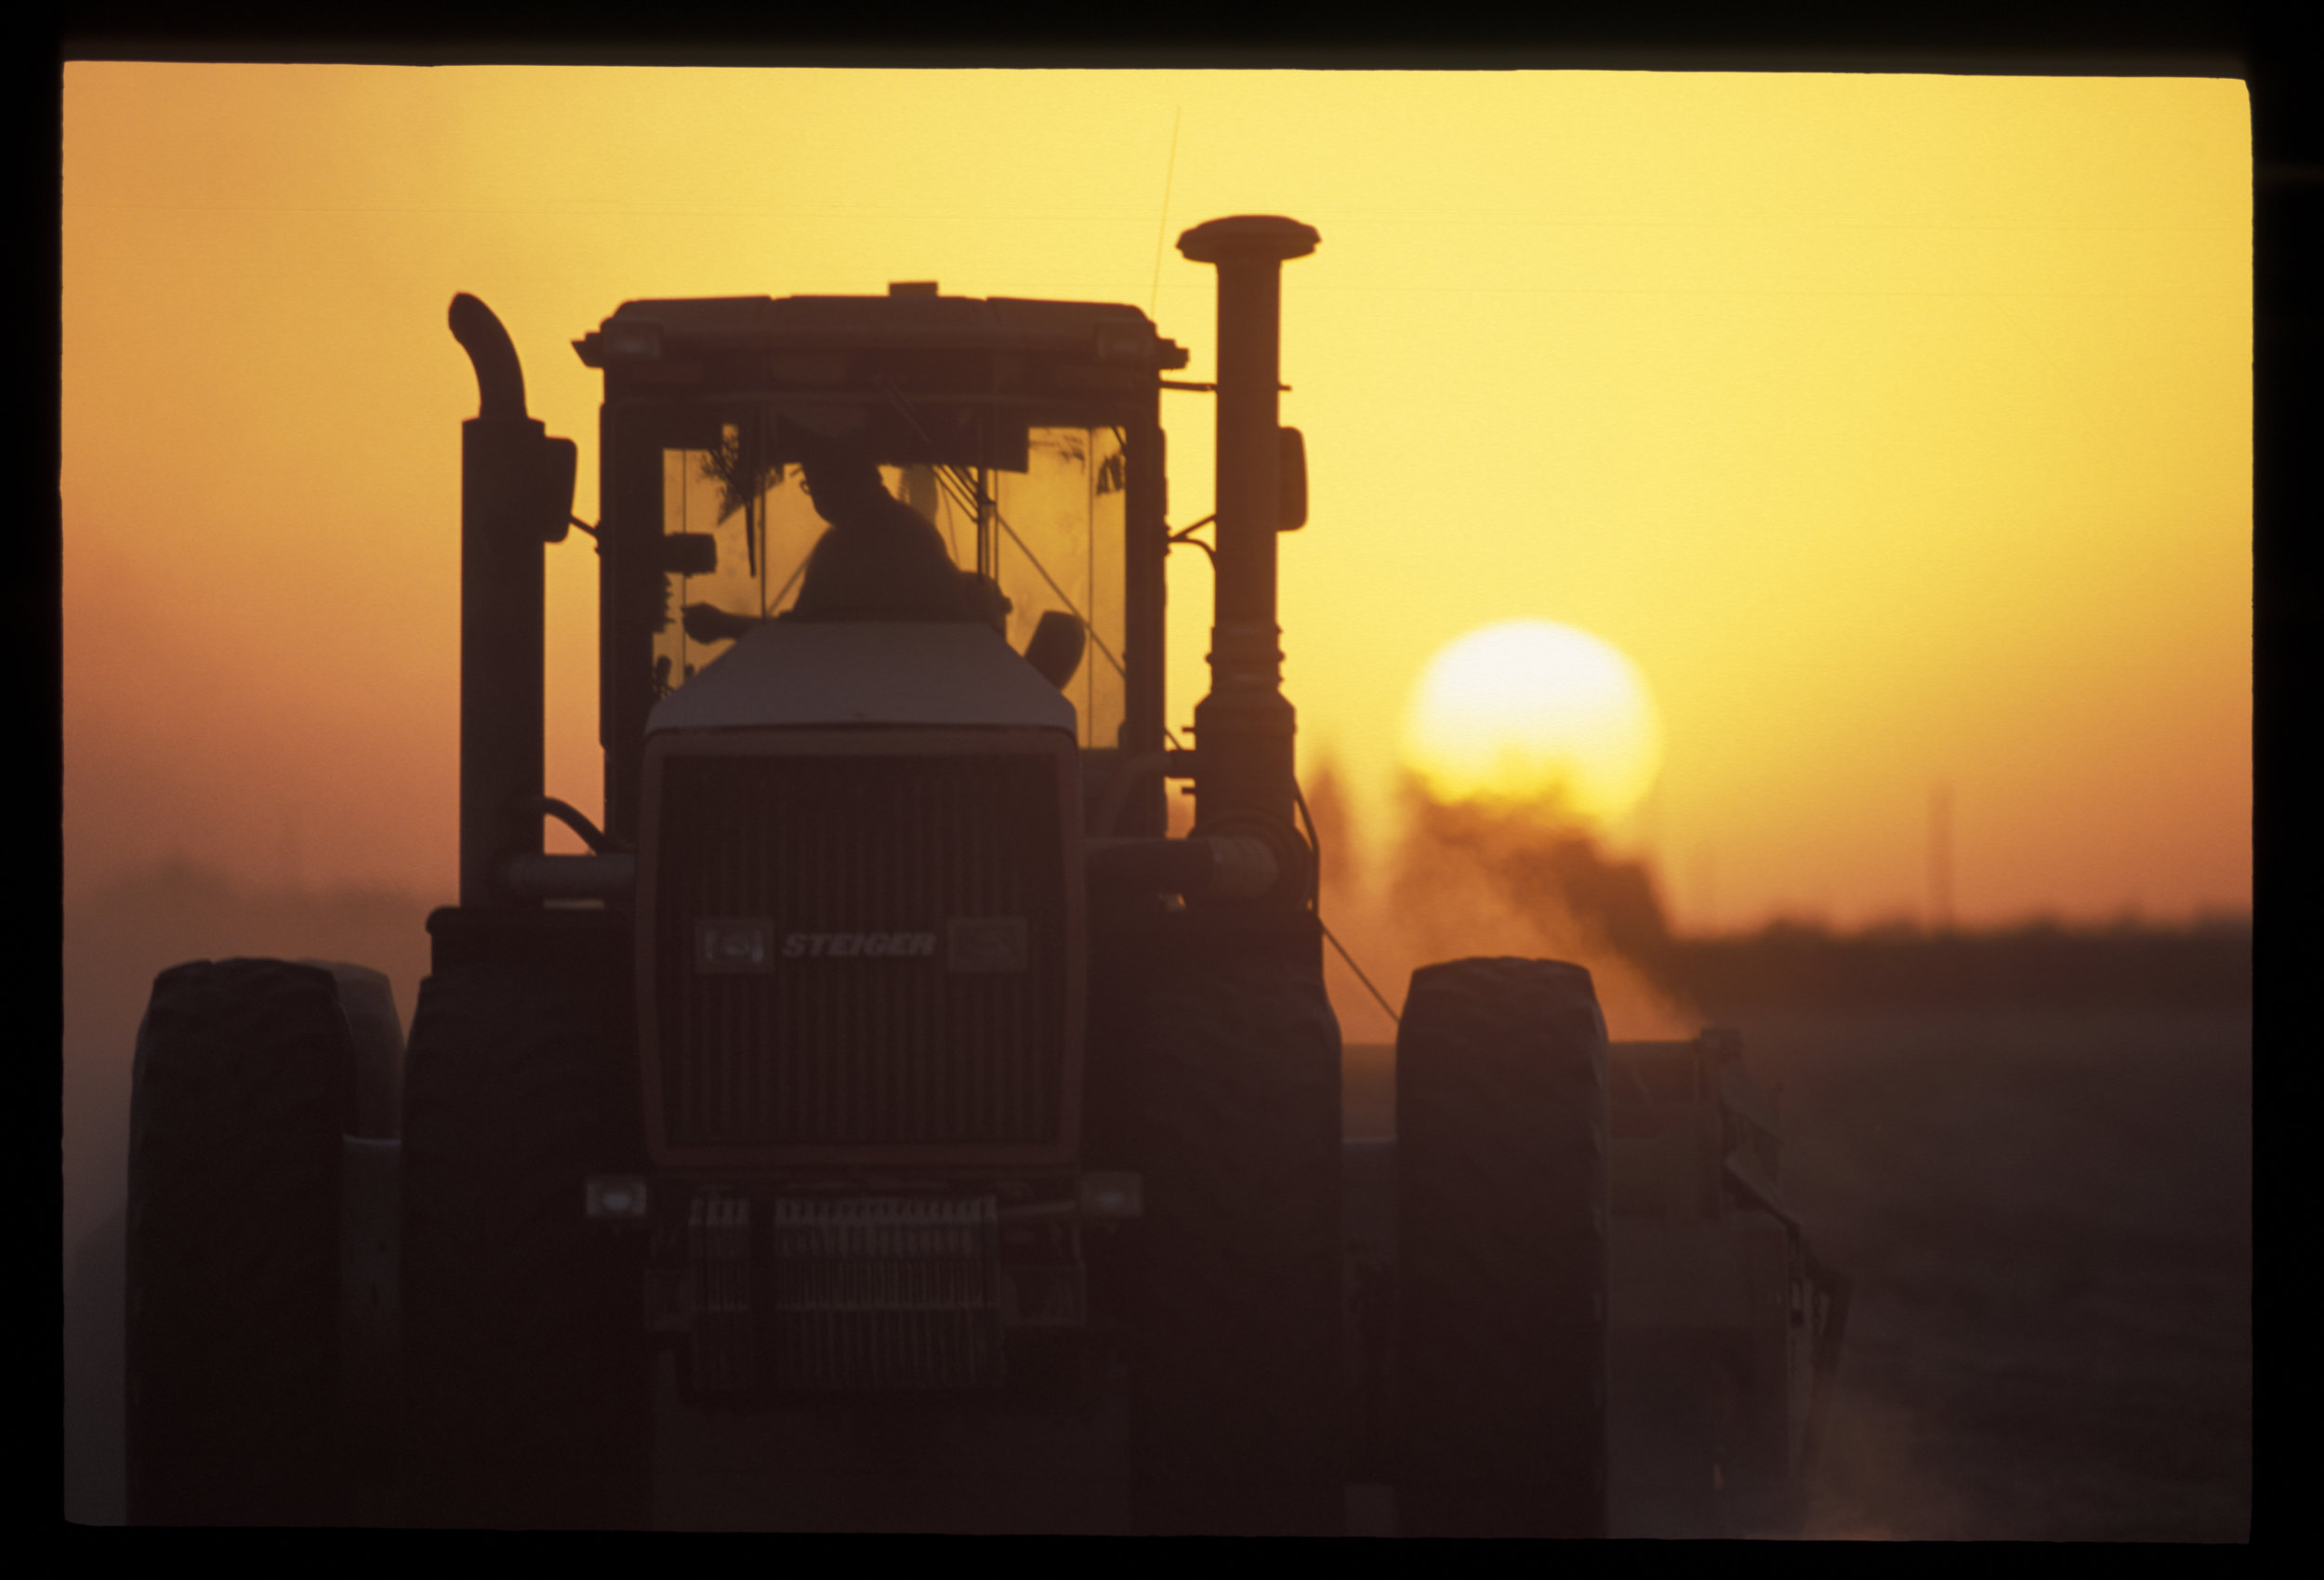 Handling sweat equity issues when bringing in the on-farm successor can limit issues down the road where an on-farm heir feels slighted. Image by Edwin Remsberg